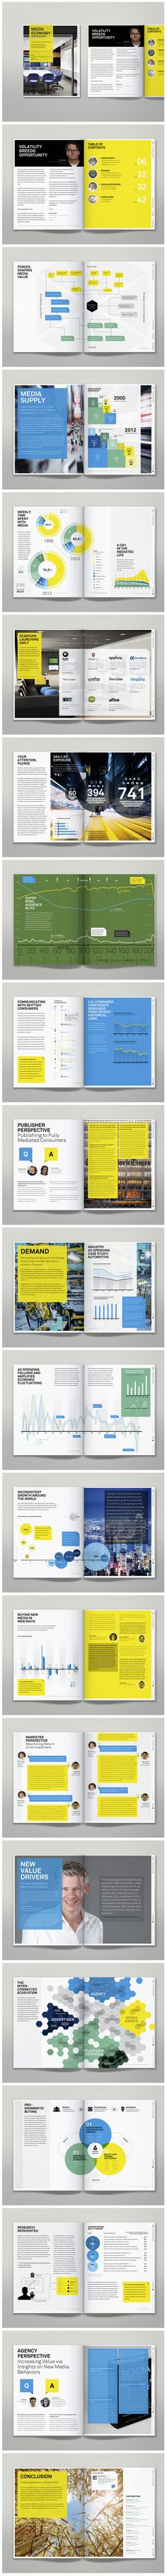 IPG Media Economy Report via Behance; could be a good annual report design